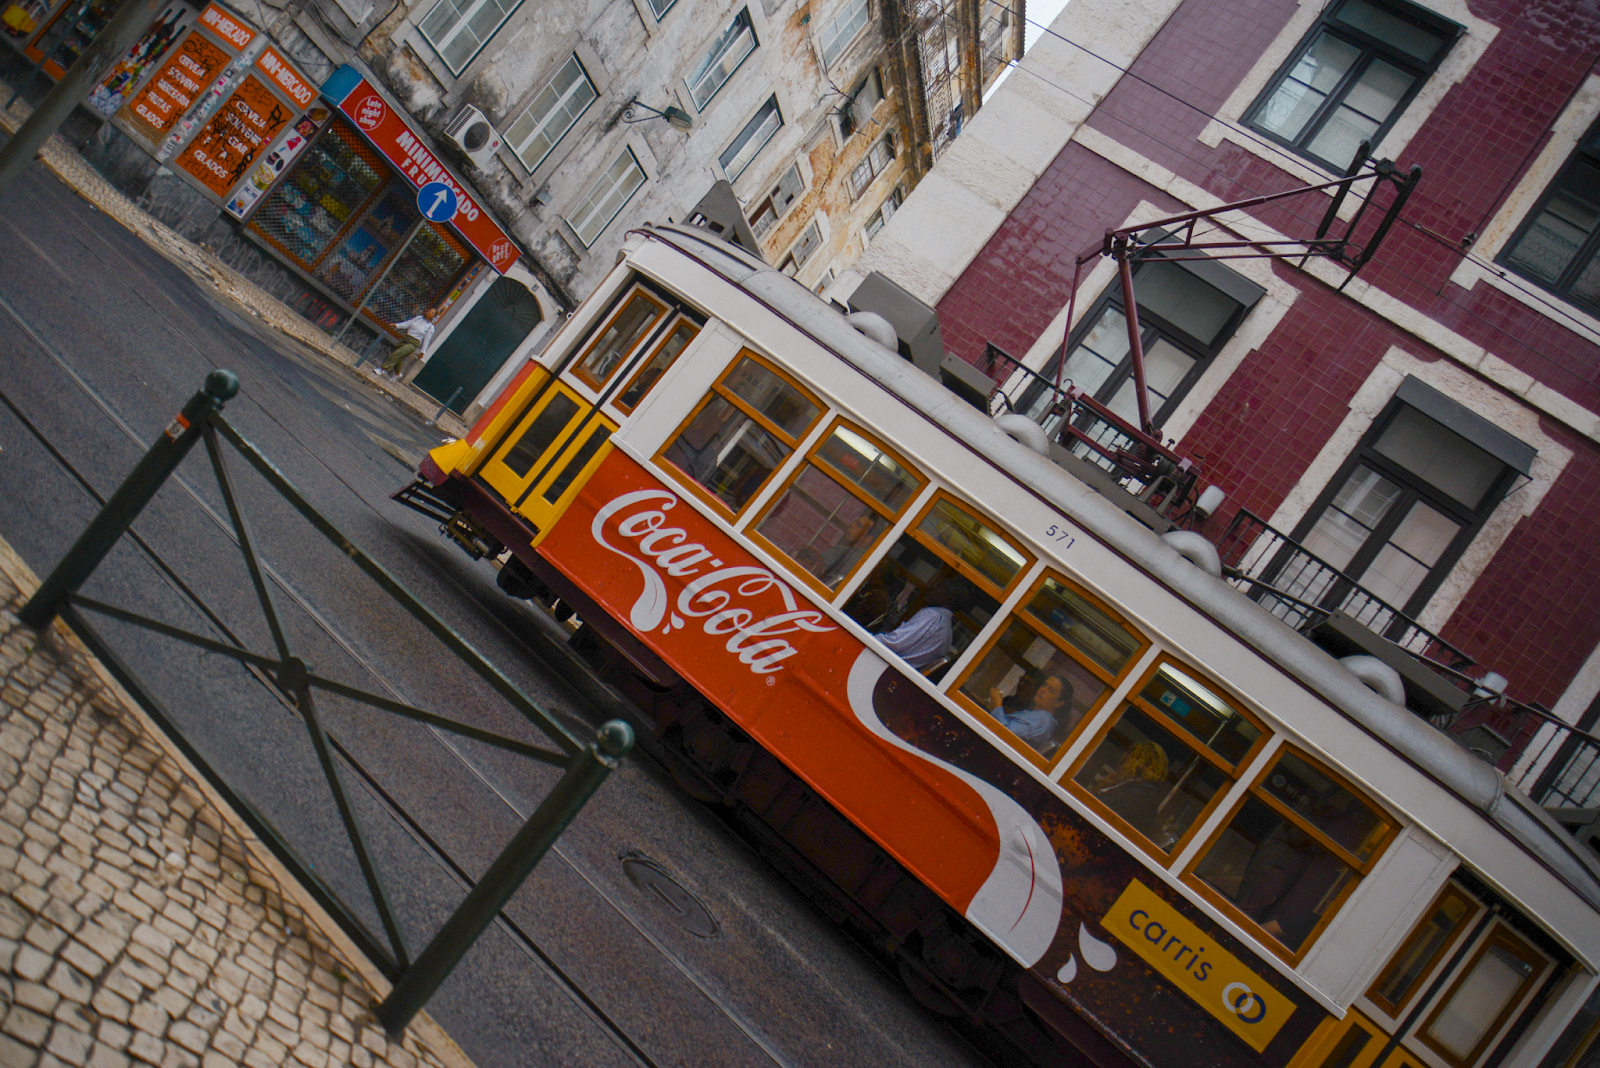 3 Days in Lisbon, Portugal, what to wear, Lisbon doors, streets, Lisbon tram photo ideas, Lisbon outfit ideas, pasteis de nata, photodiary / FOREVERVANNY.com